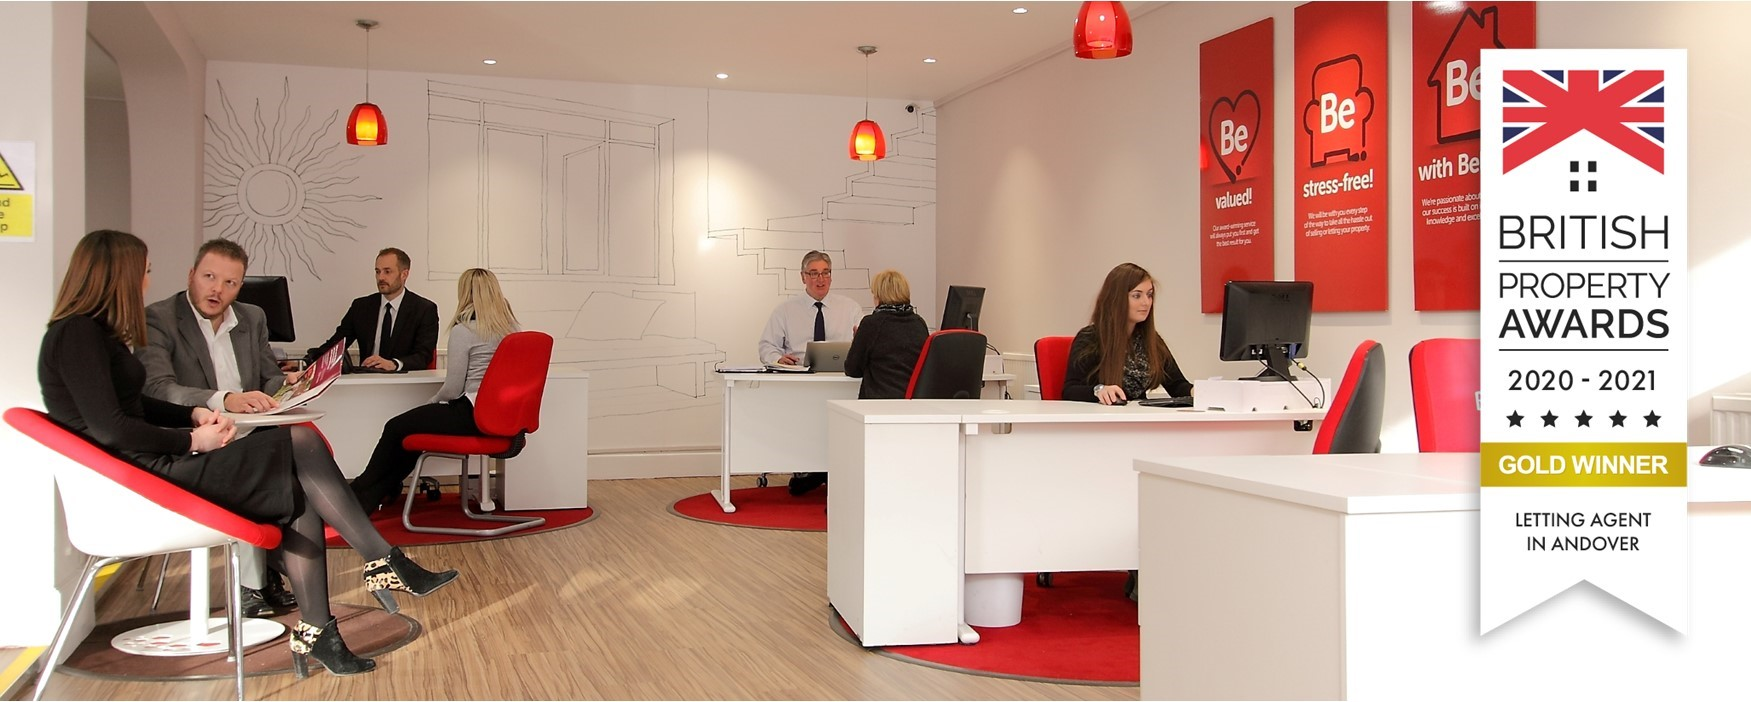 Belvoir Estate and Lettings Agent, Andover